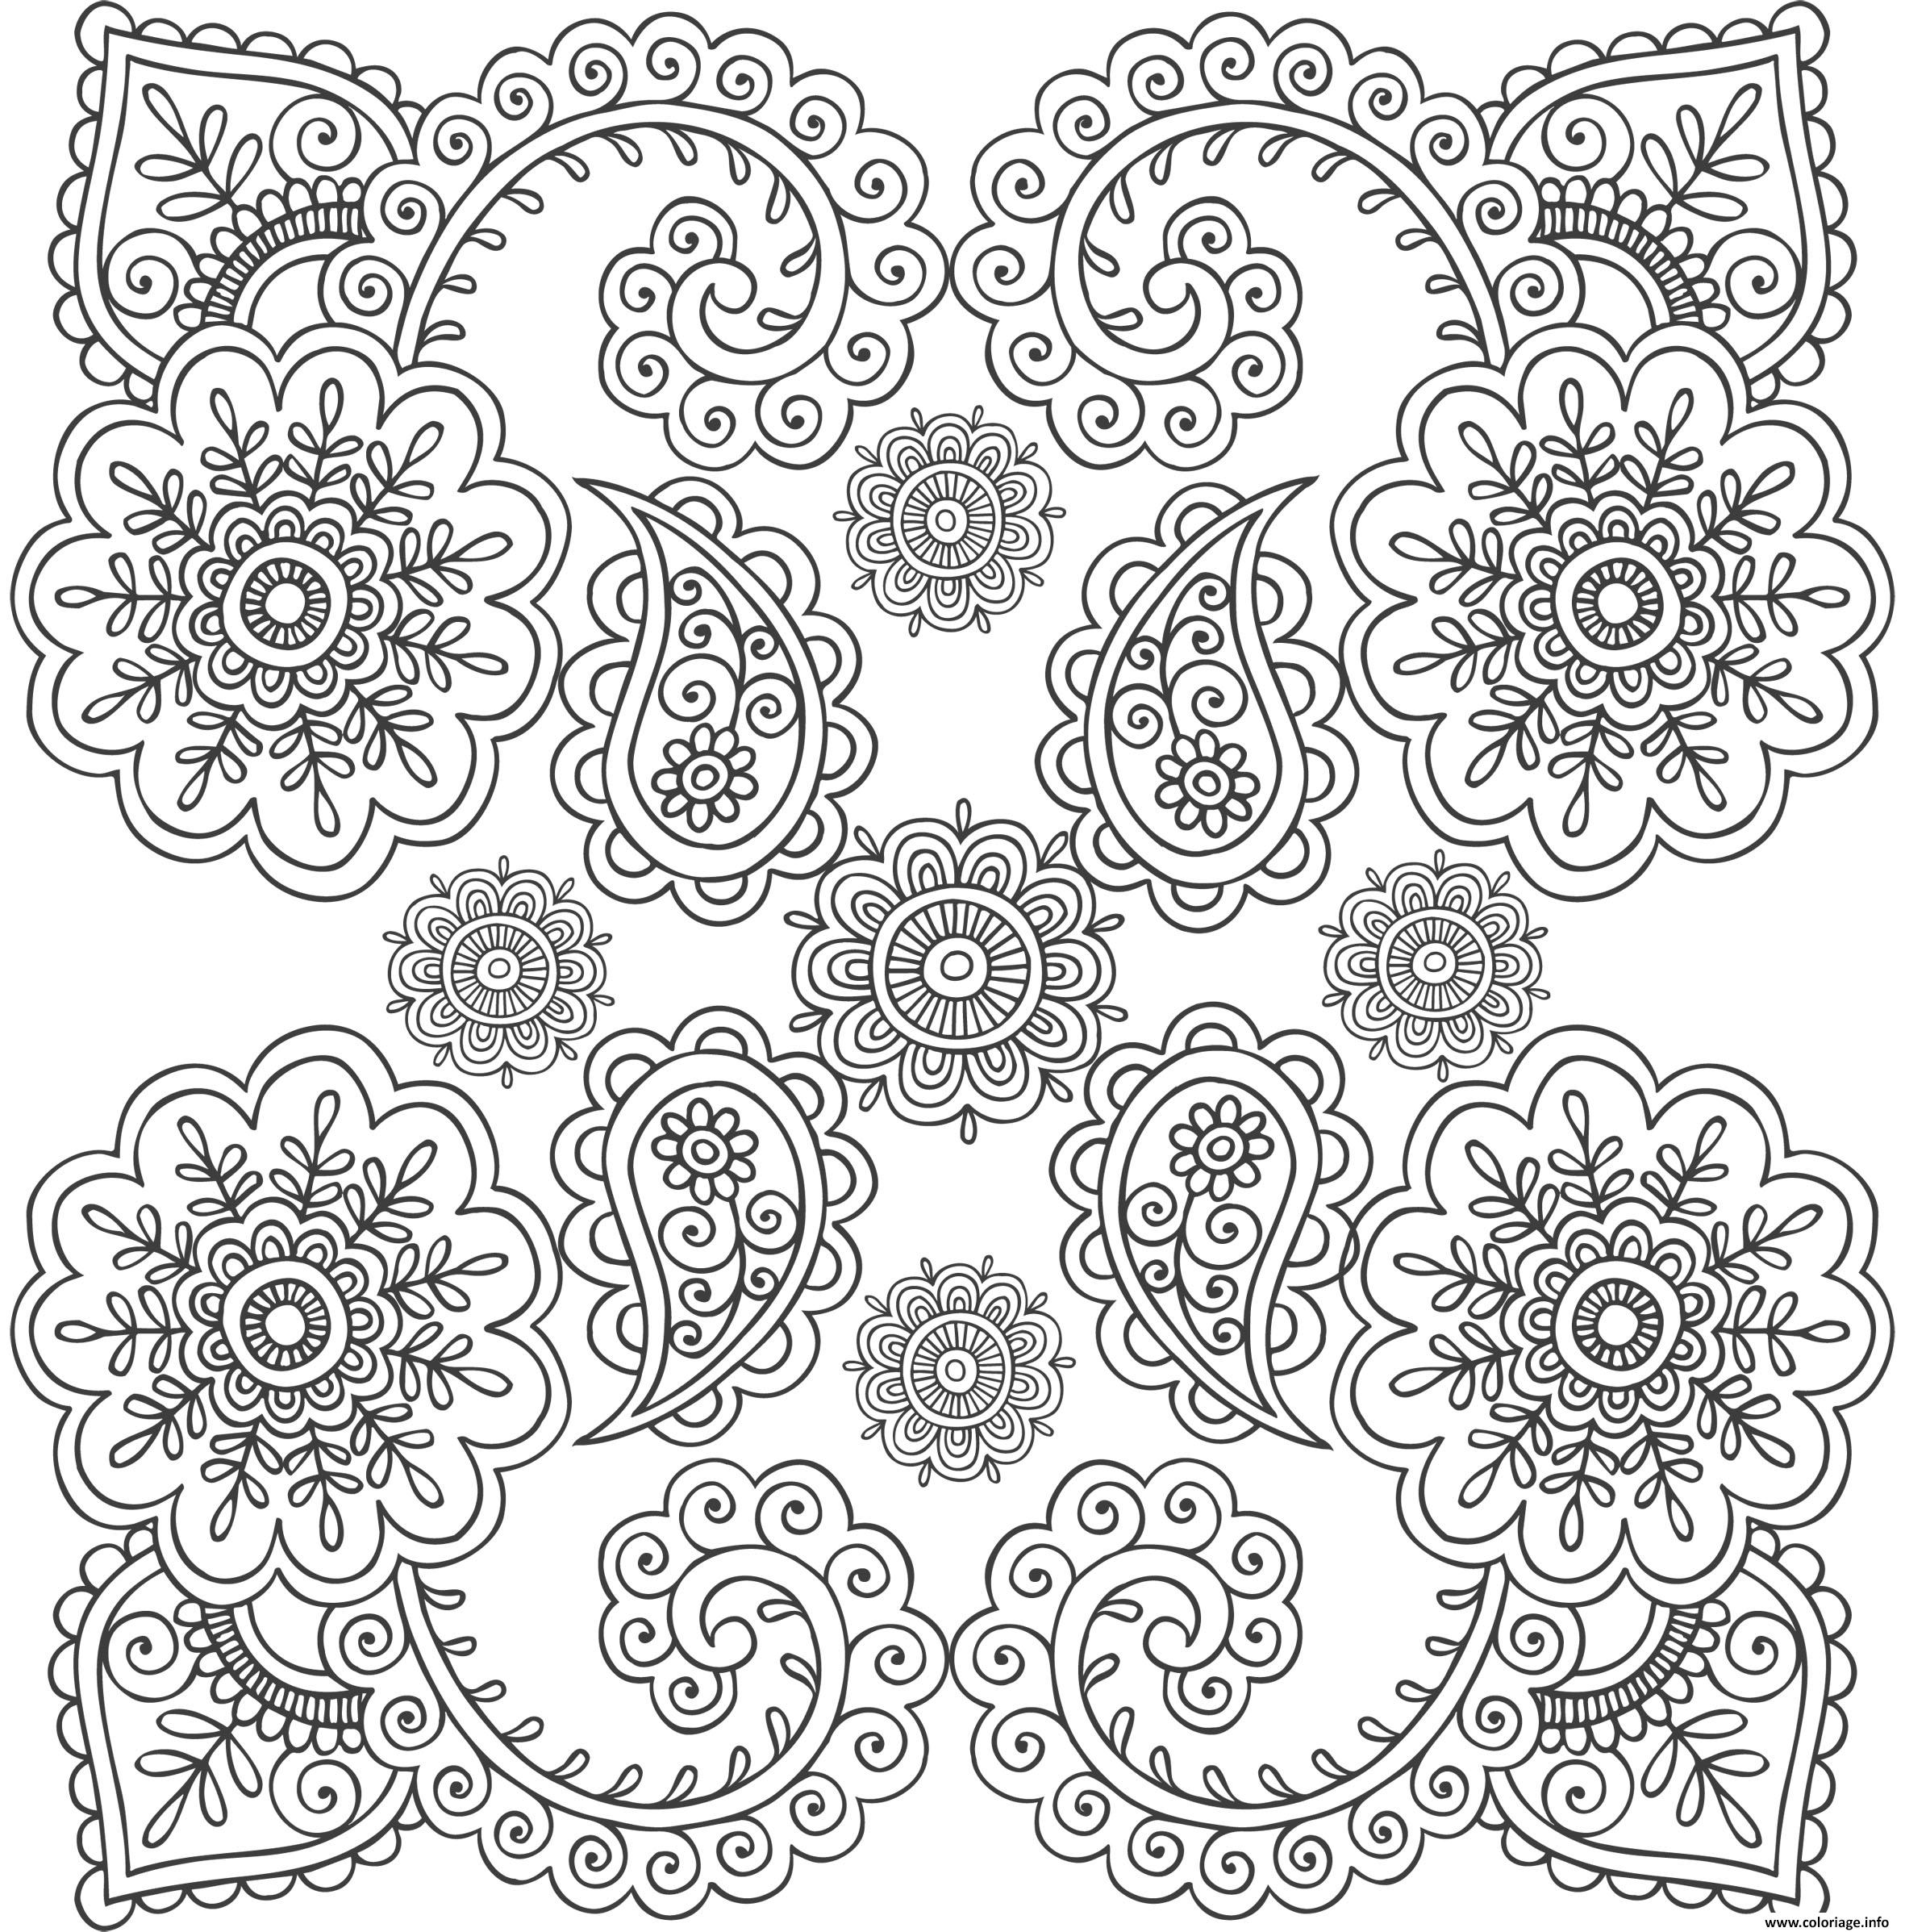 Coloriage Xxl Mandala Anti Stress dessin